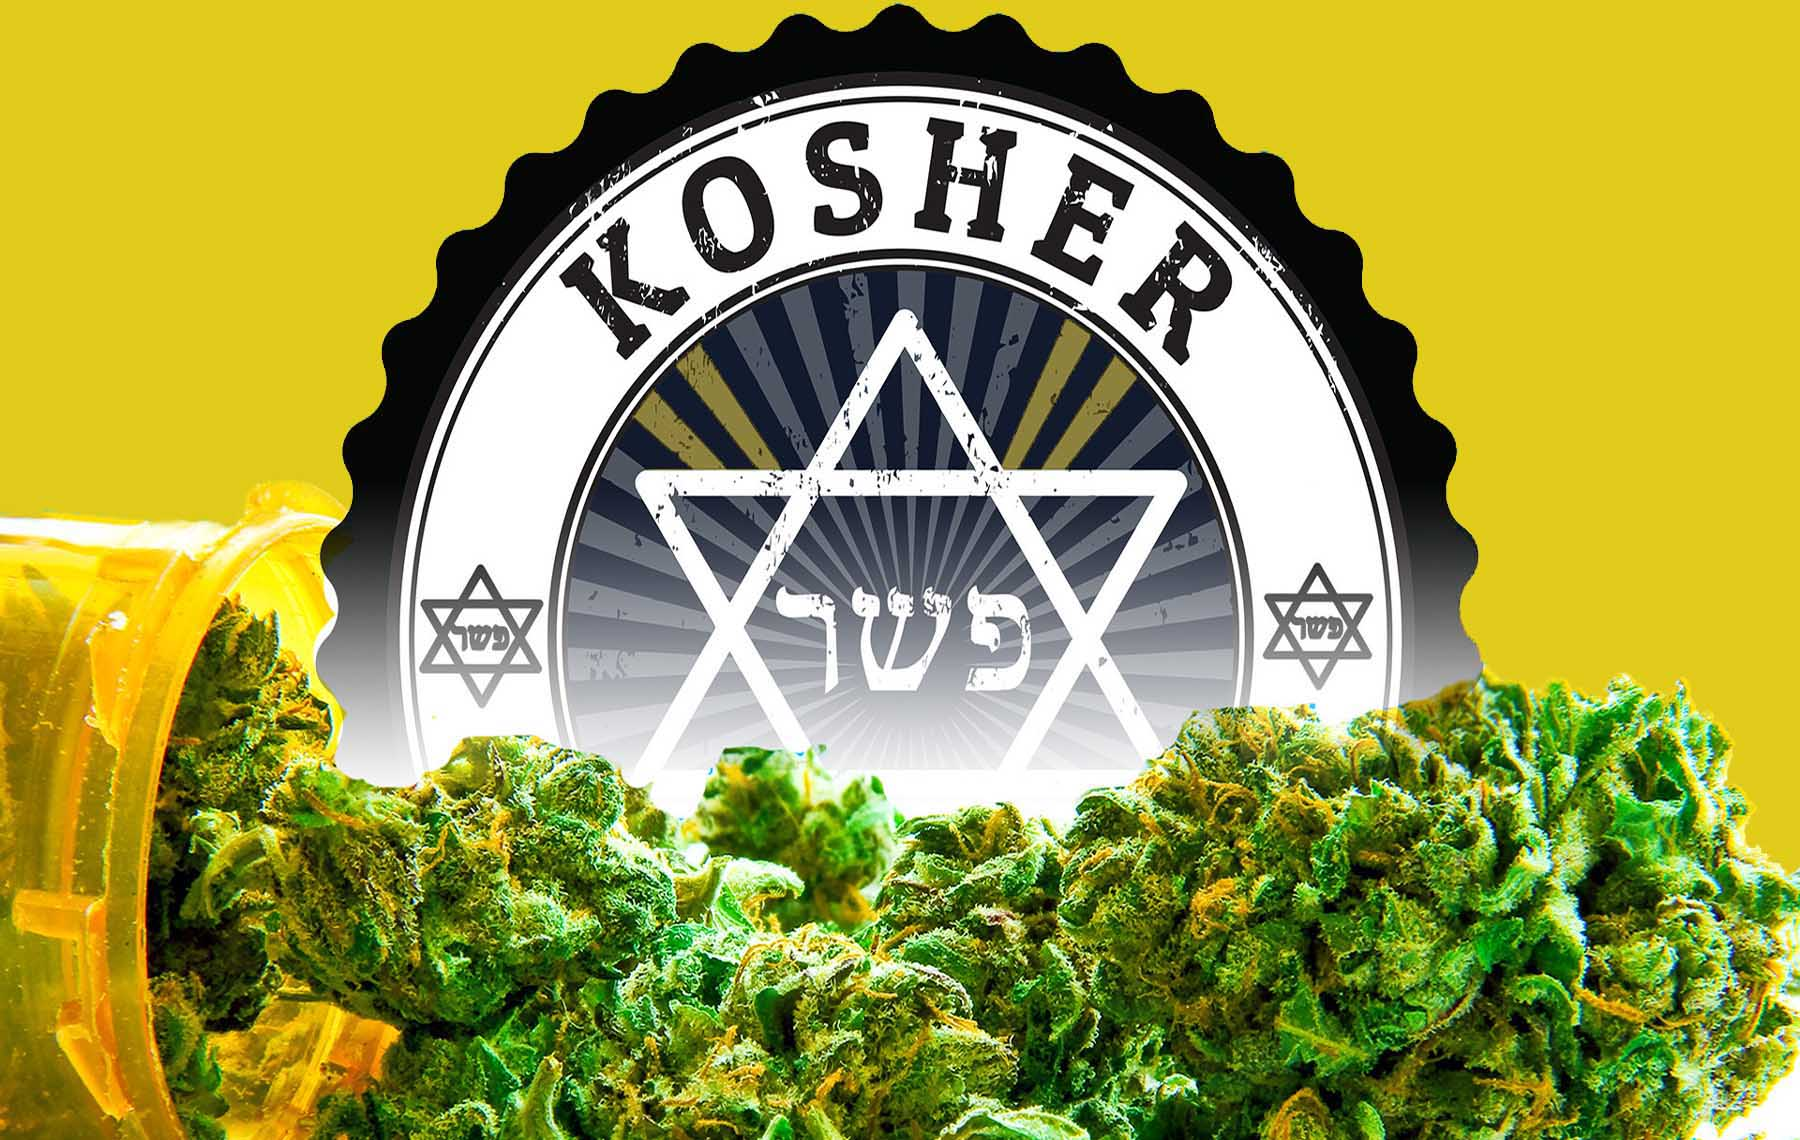 Holy Weed in Elmhurst, Queens! › A Journey through NYC religions